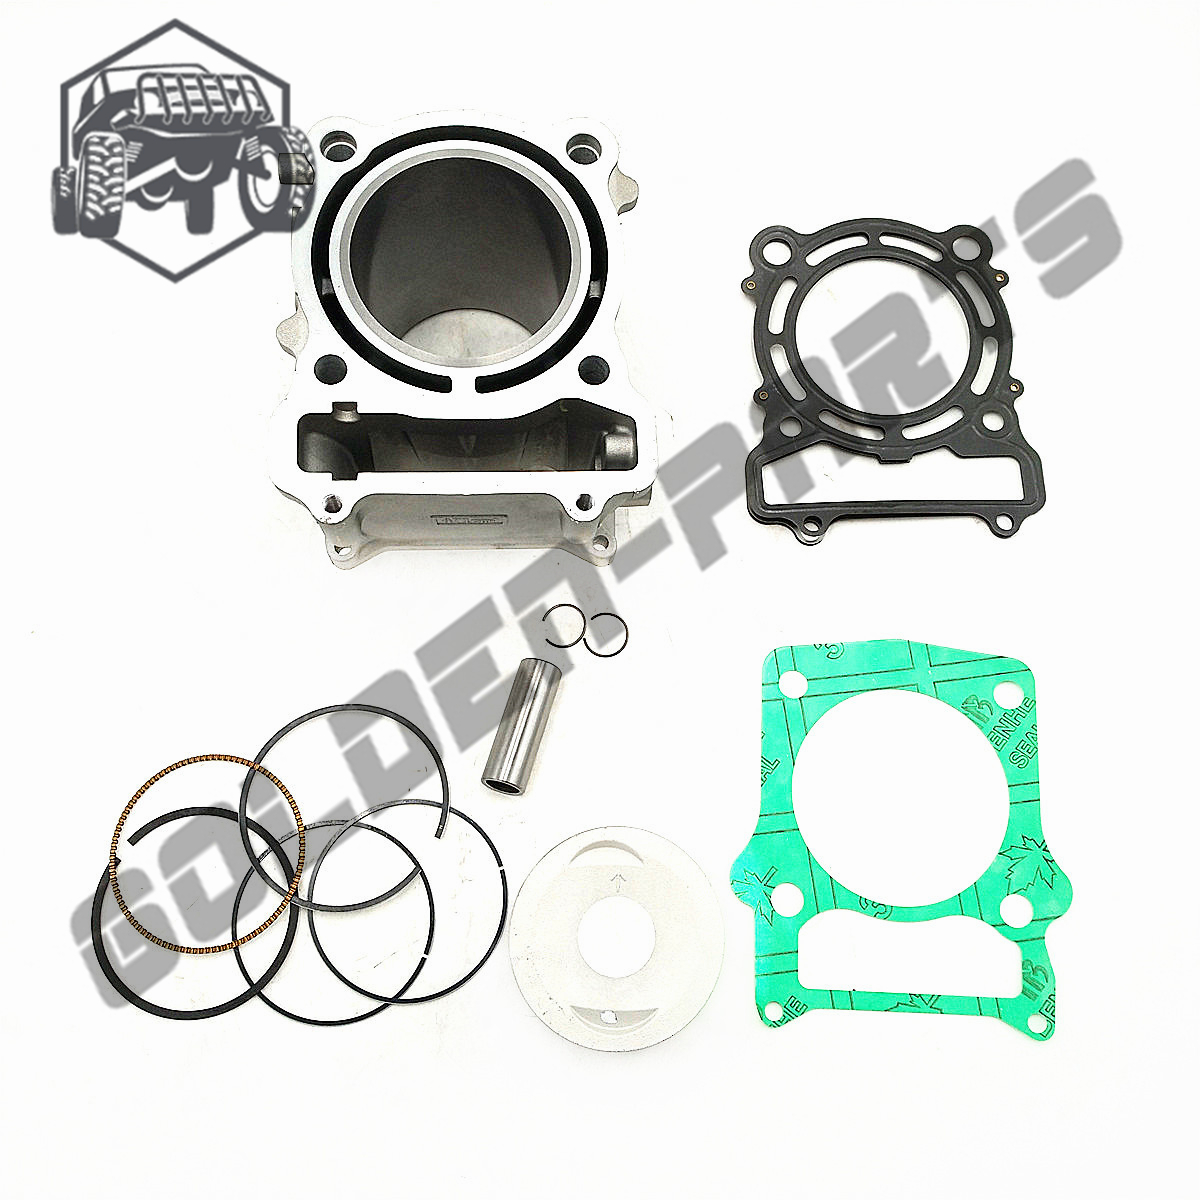 KUOQIAN <font><b>HISUN</b></font> Parts HS500cc HS <font><b>500</b></font> Cylinder Assy Piston Kit Rings For <font><b>Hisun</b></font> 500cc HS500 ATV <font><b>UTV</b></font> Parts High Quality image